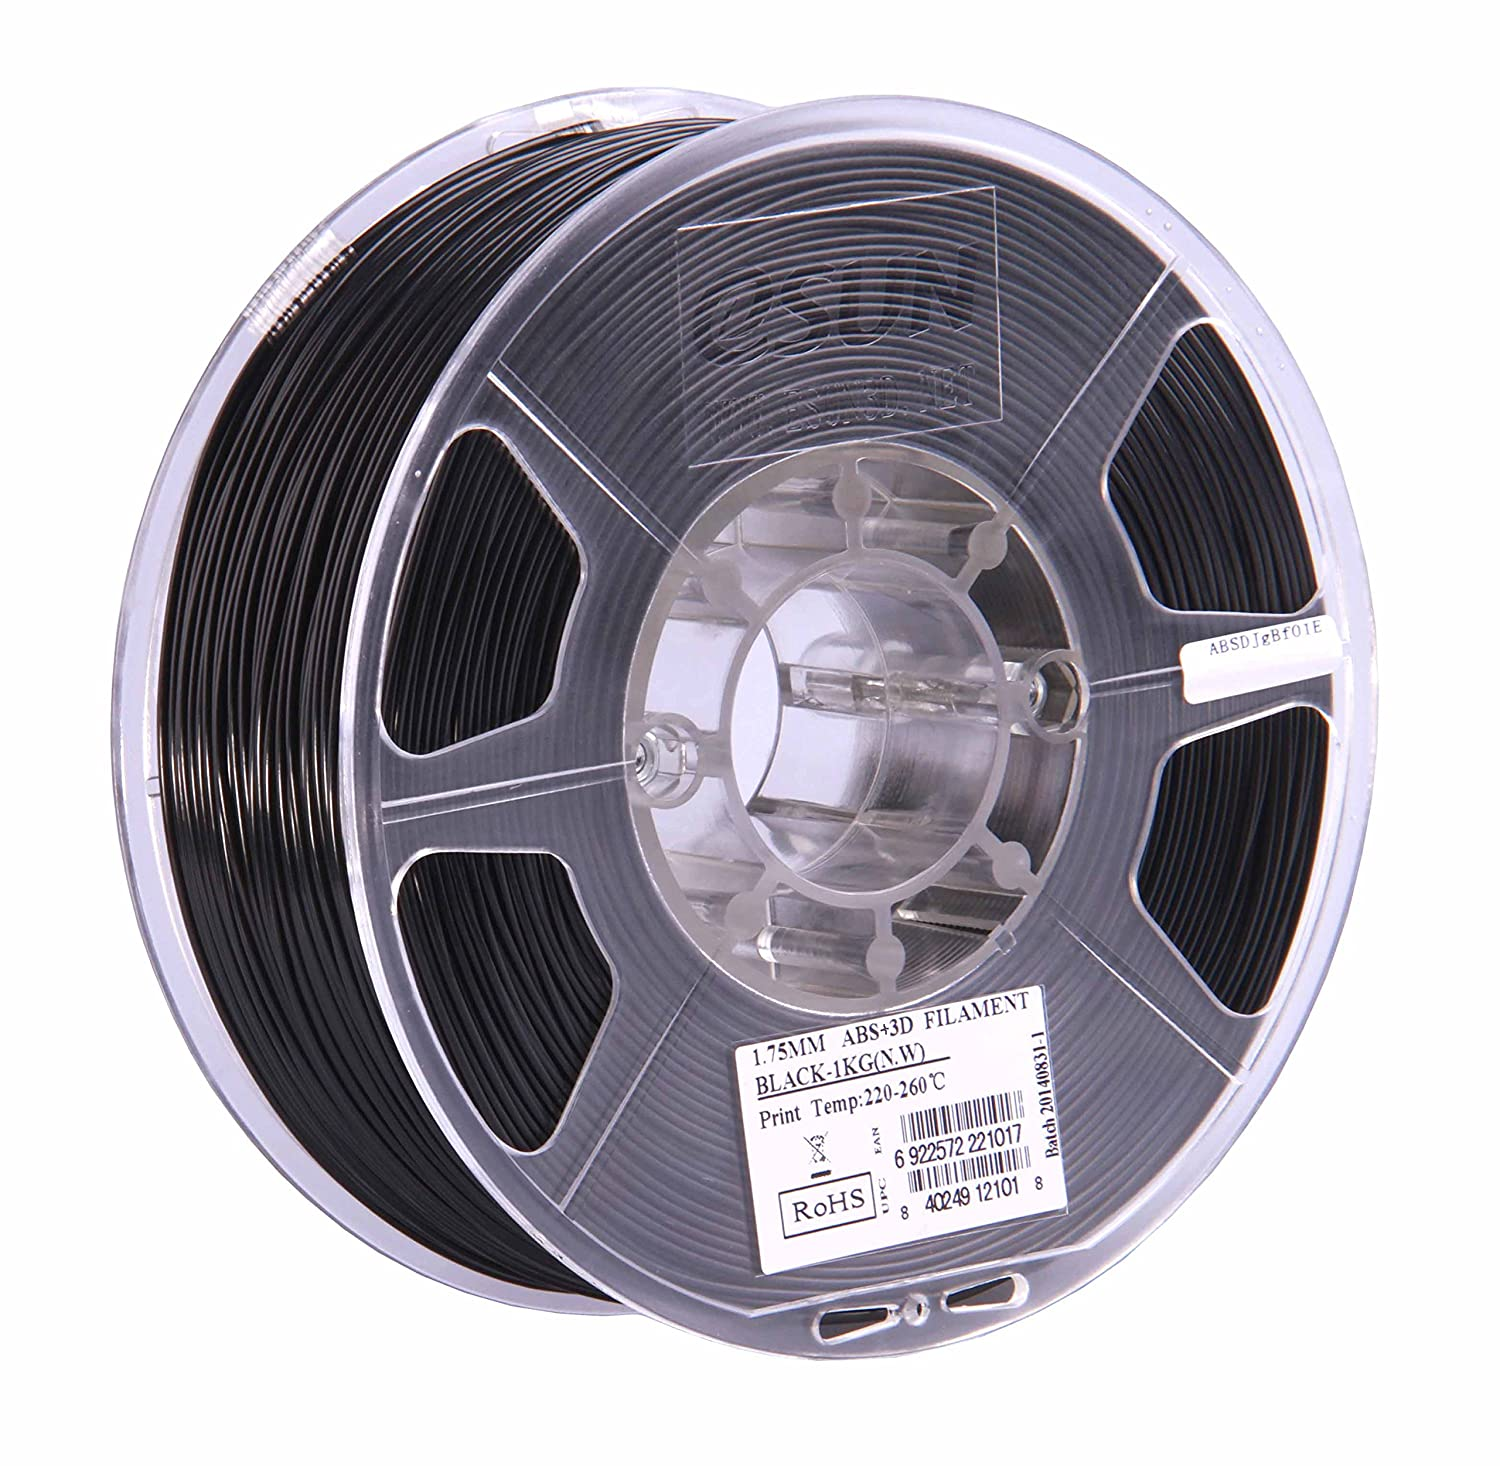 Abs Peak Green A Complete Range Of Specifications Go 3d 3d Printer Filament